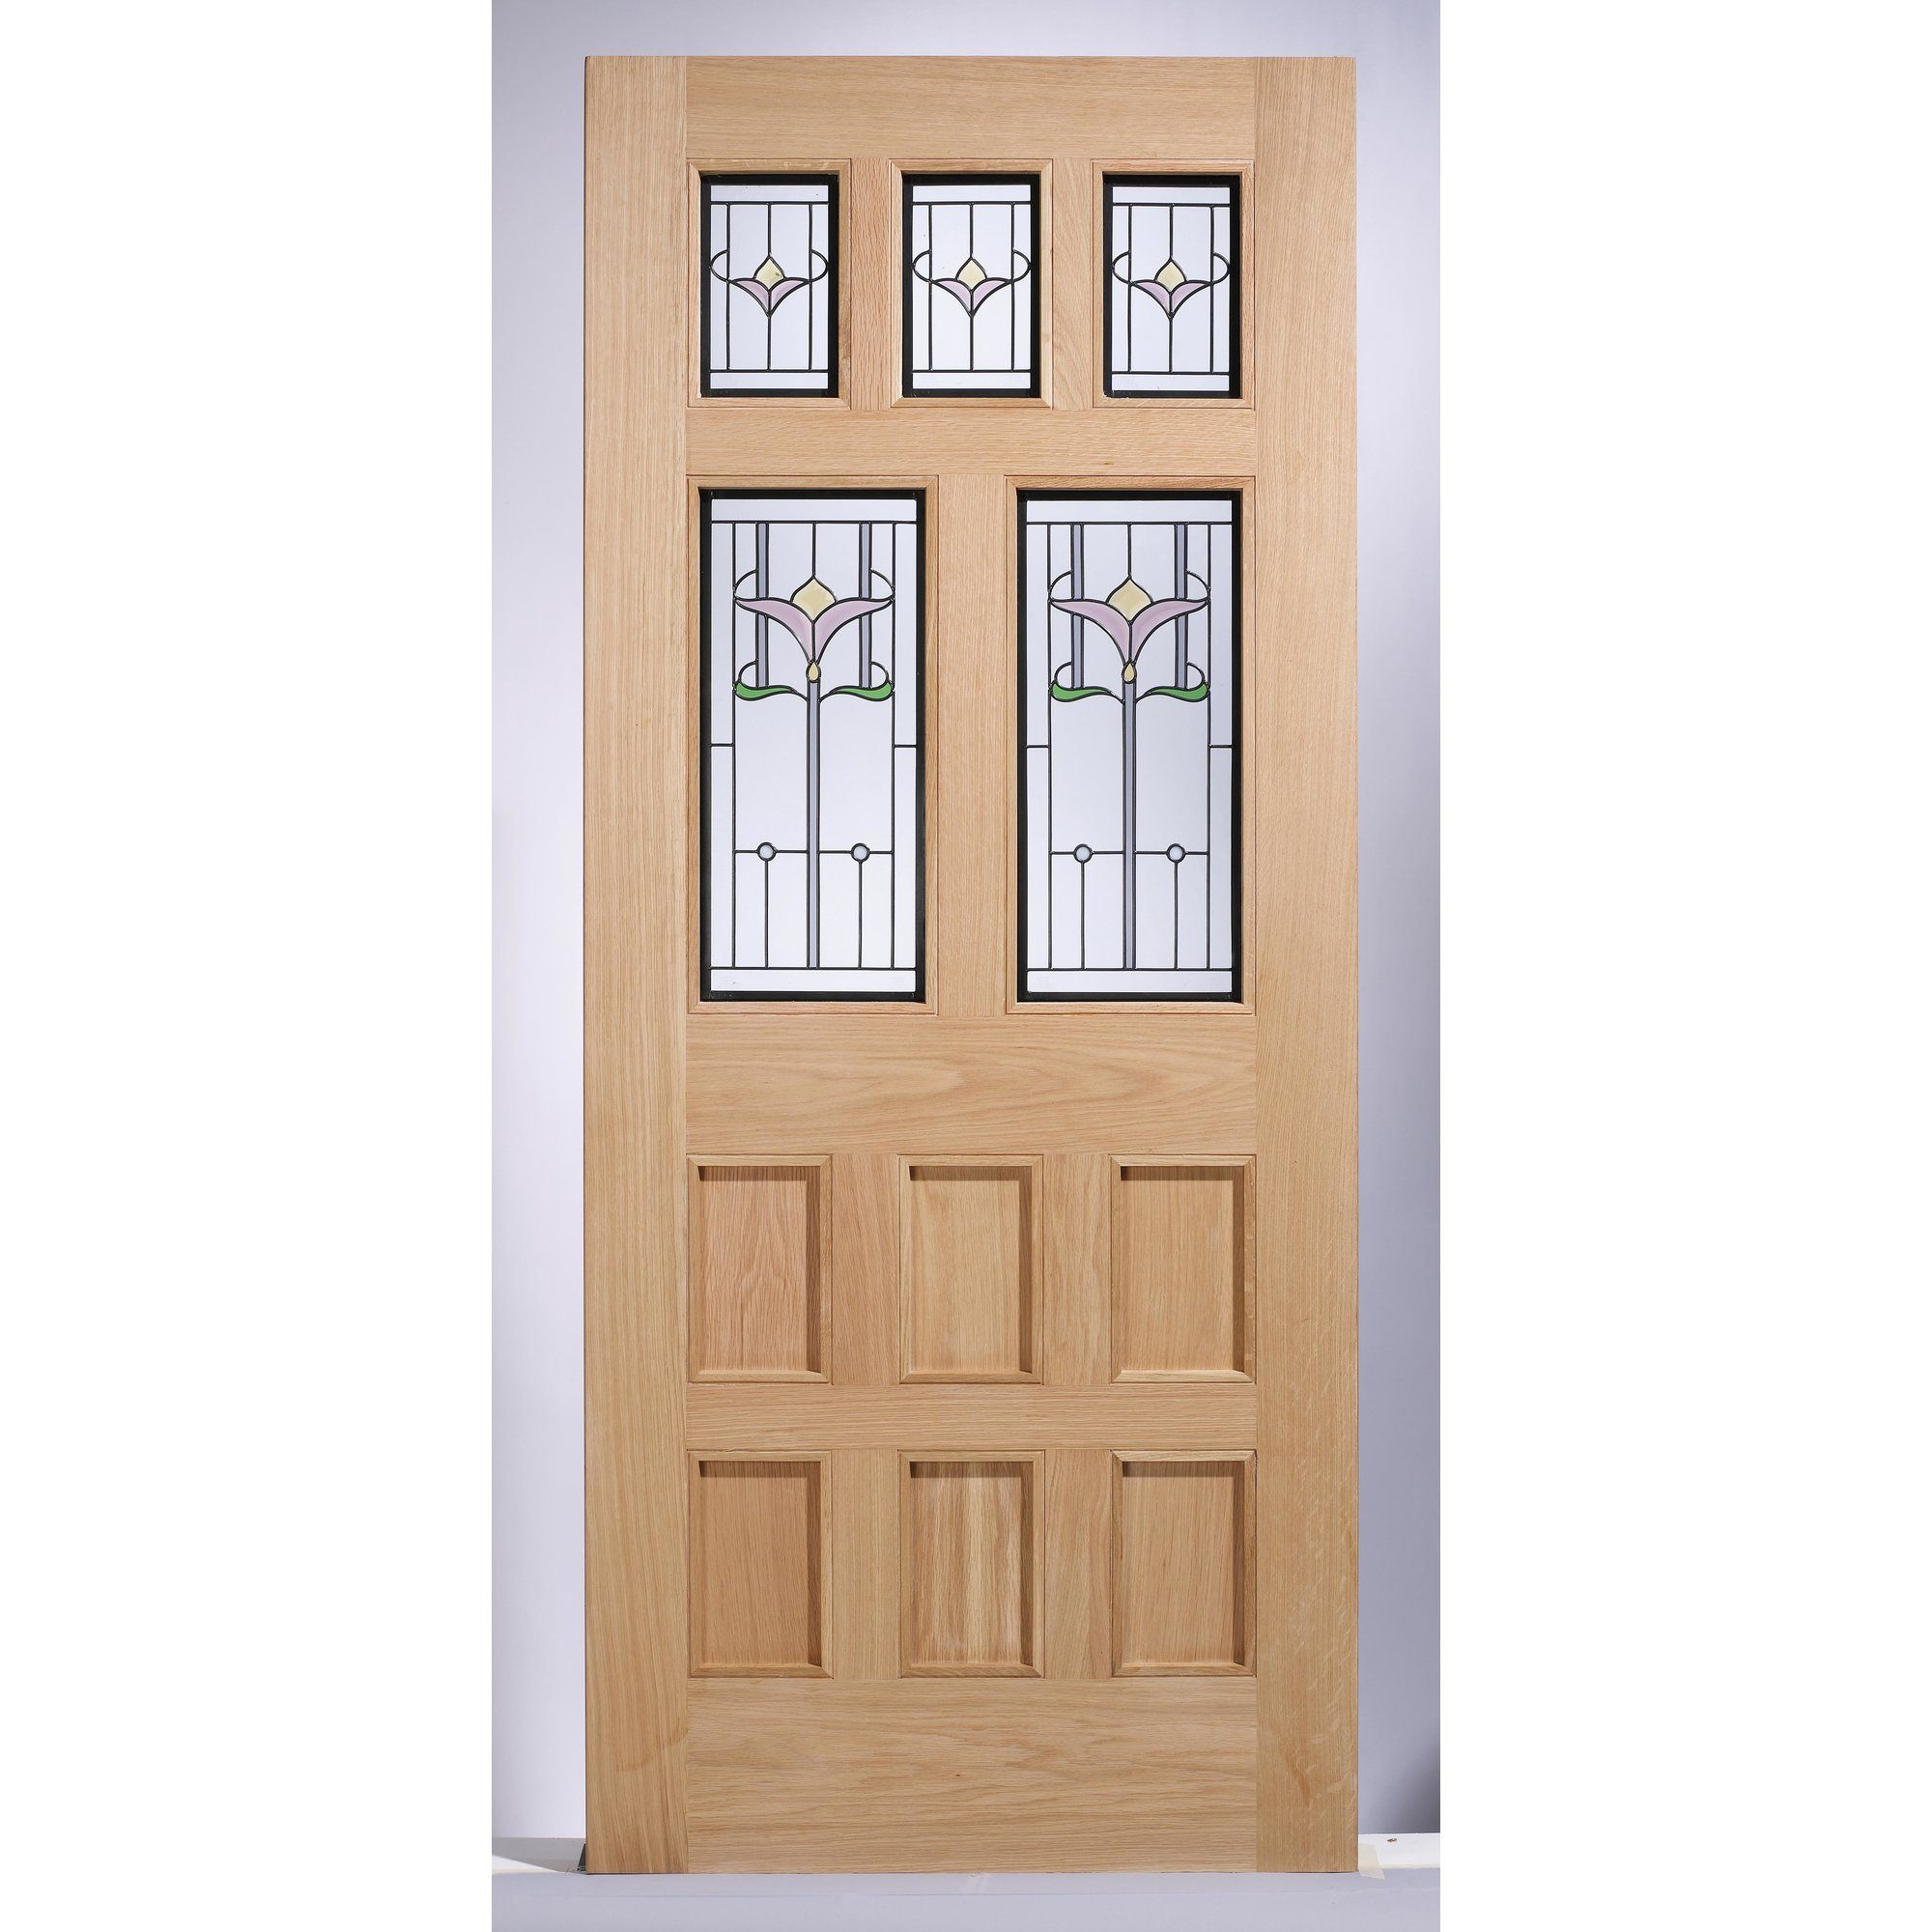 Wood Glazed External Door Glazed external doors